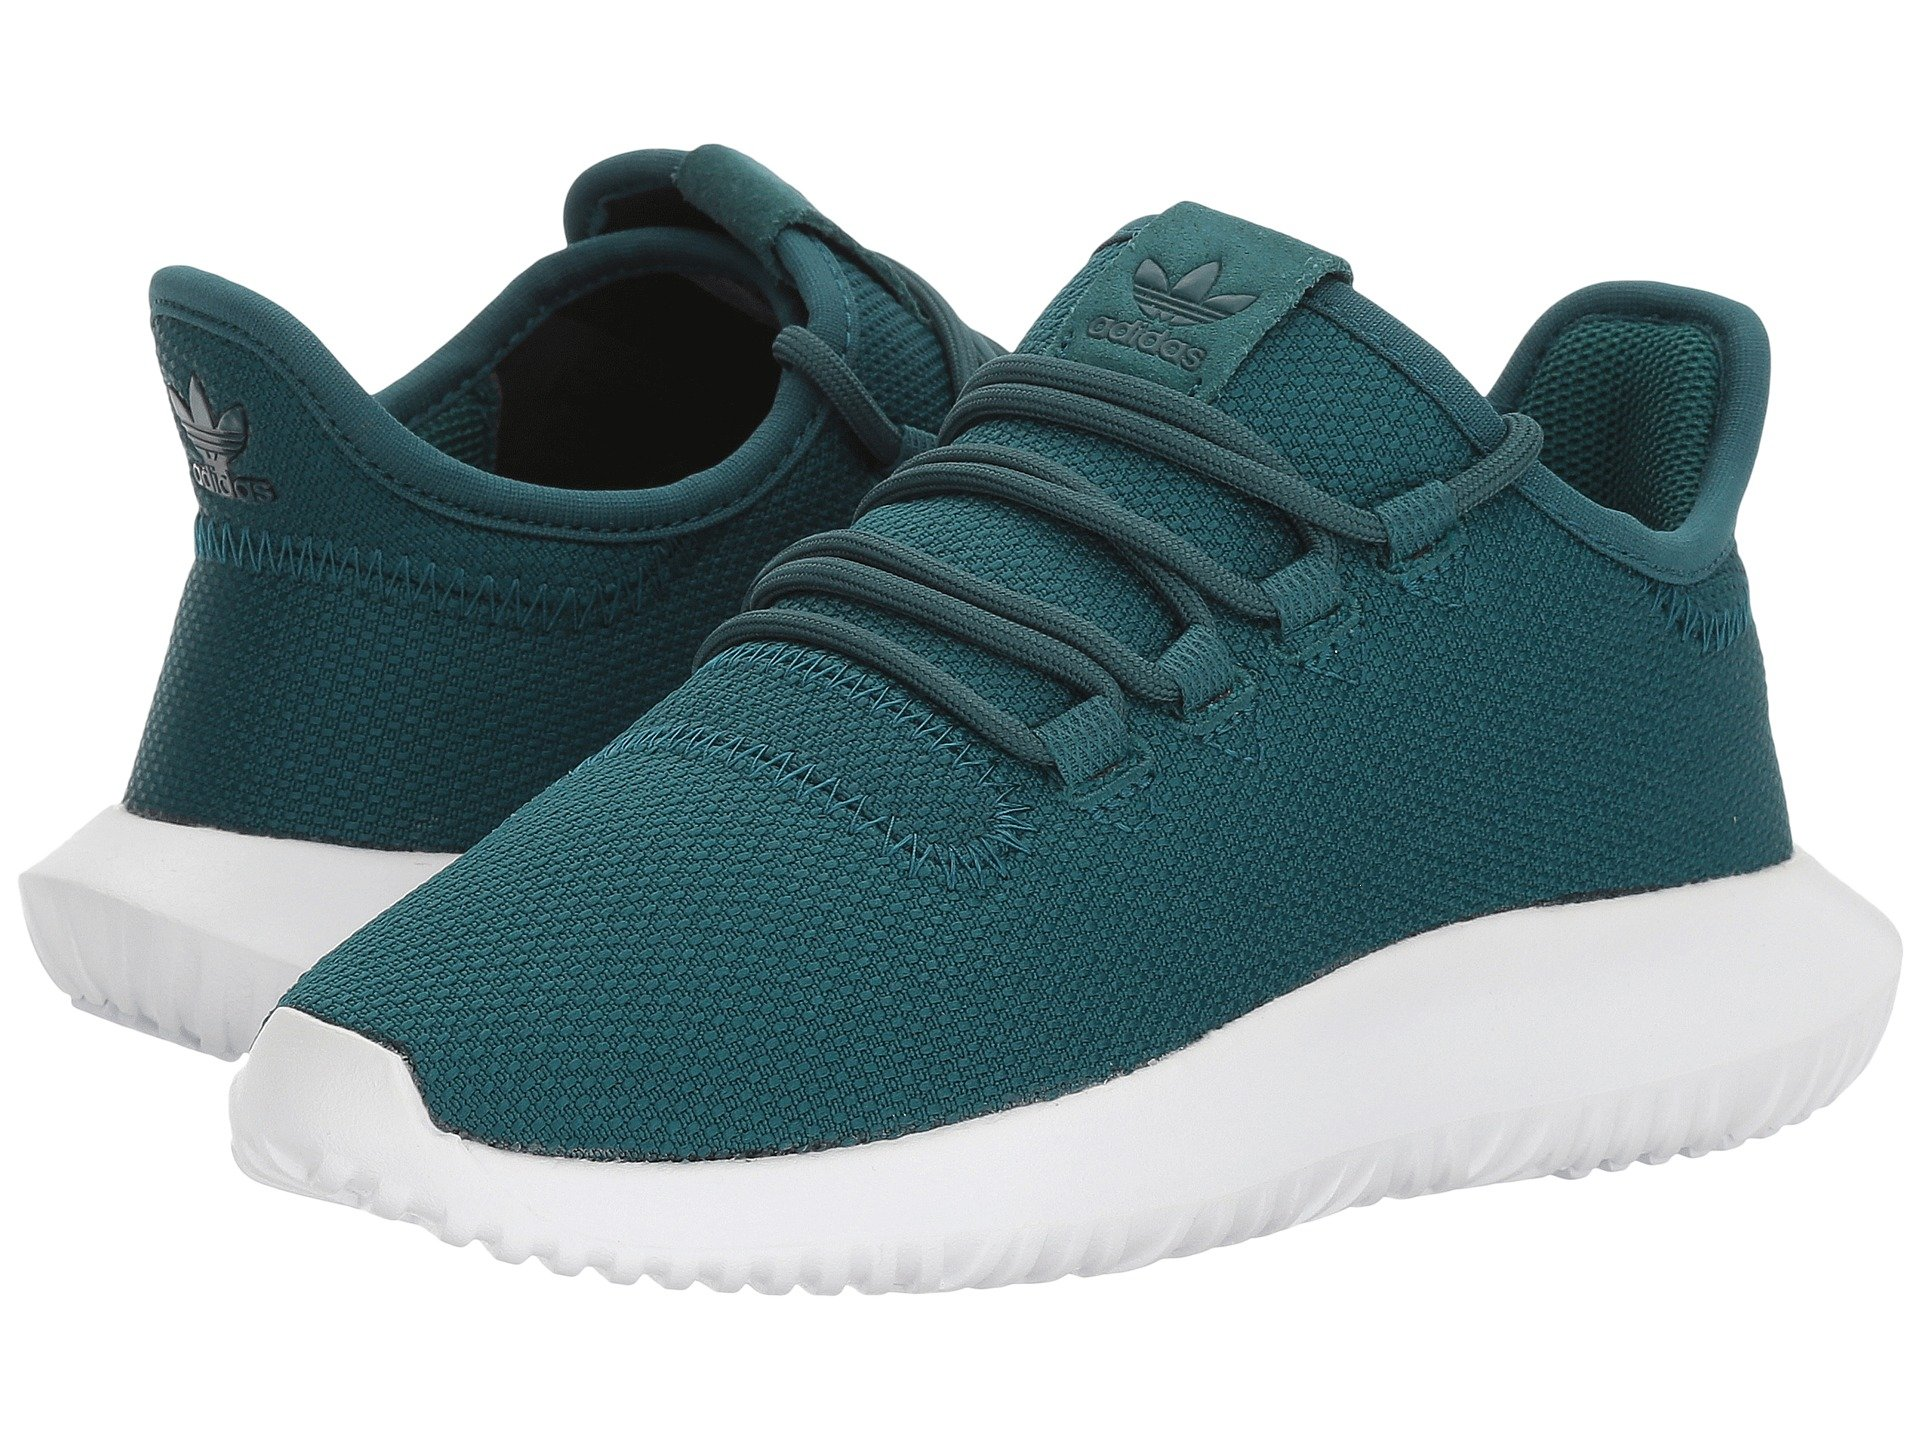 View More Like This adidas Originals Kids - Tubular Shadow (Big Kid)